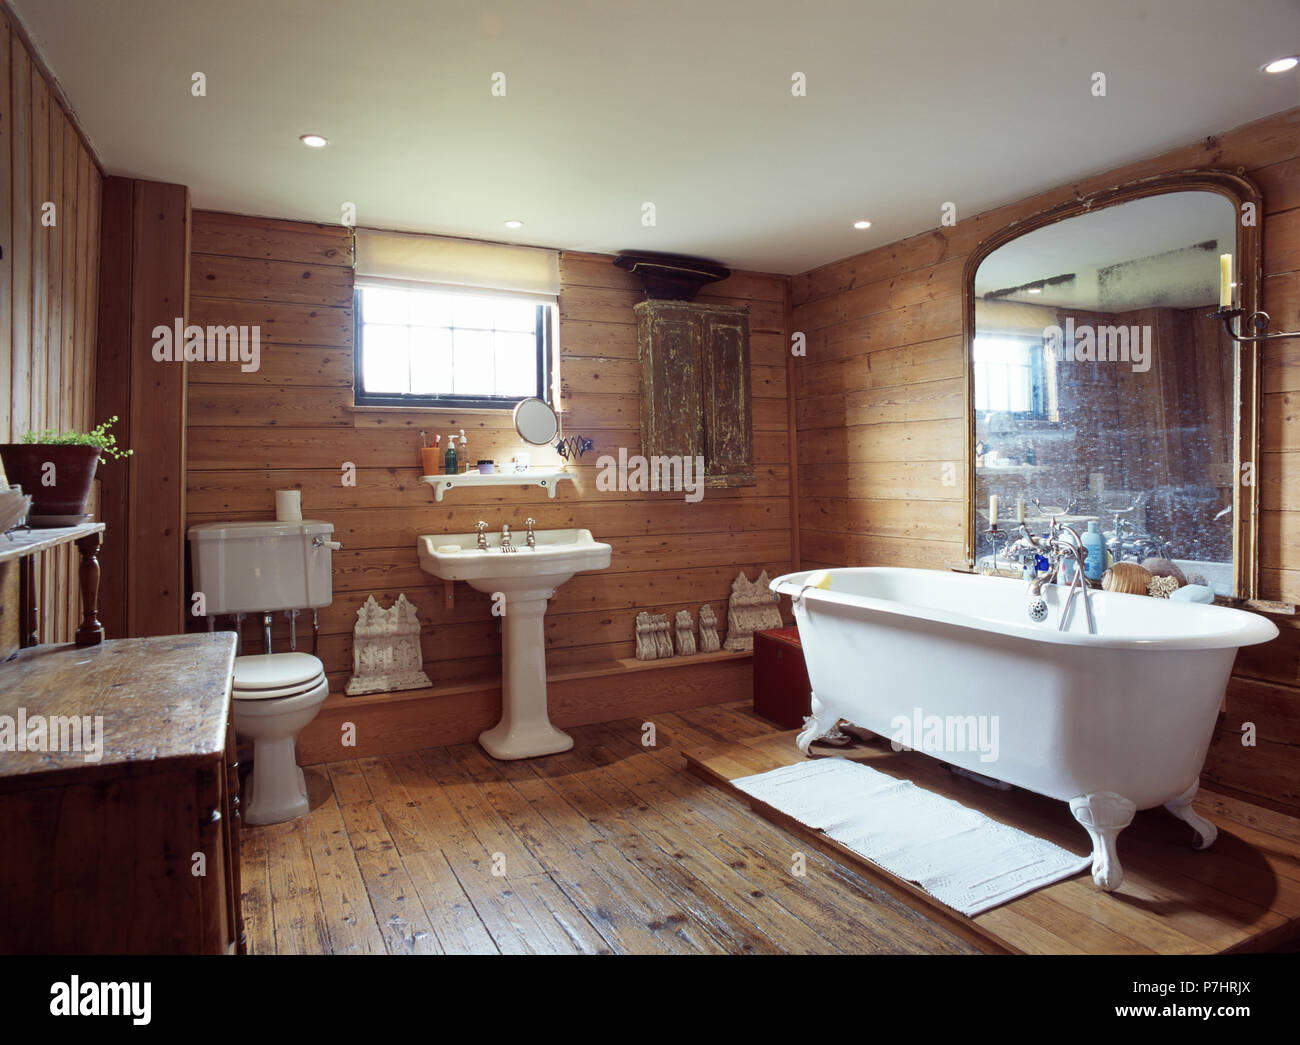 Wood Panelled Walls And Floor In Country Bathroom With Large Antique - Country-bathroom